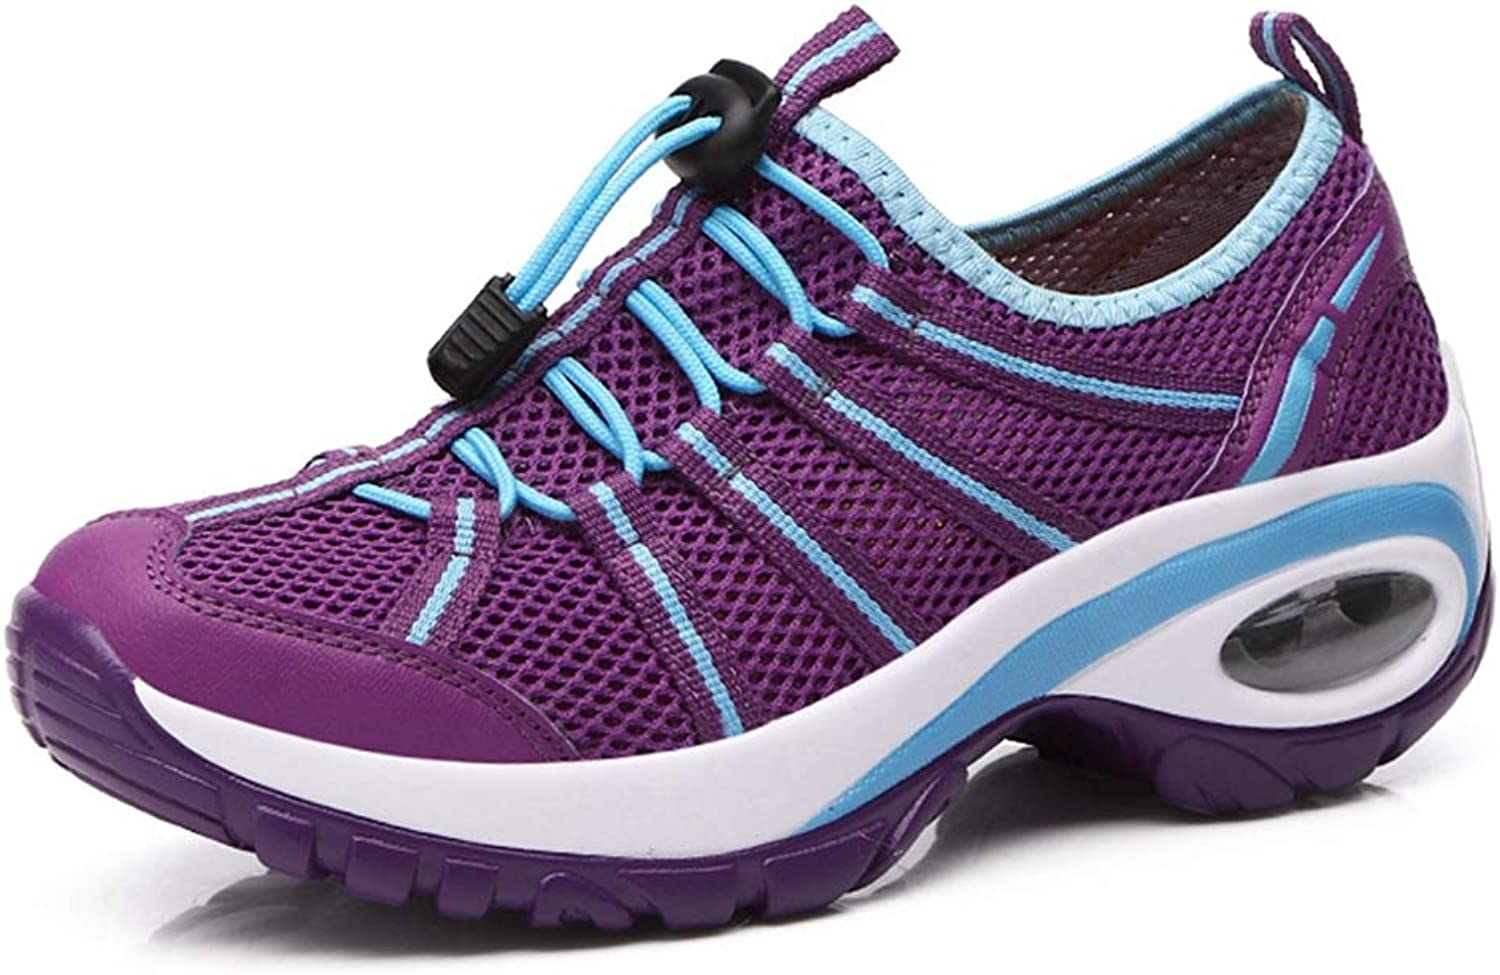 Giles Jones Hiking shoes for Women Air Breathable Wading Anti-Slipping Climbing shoes